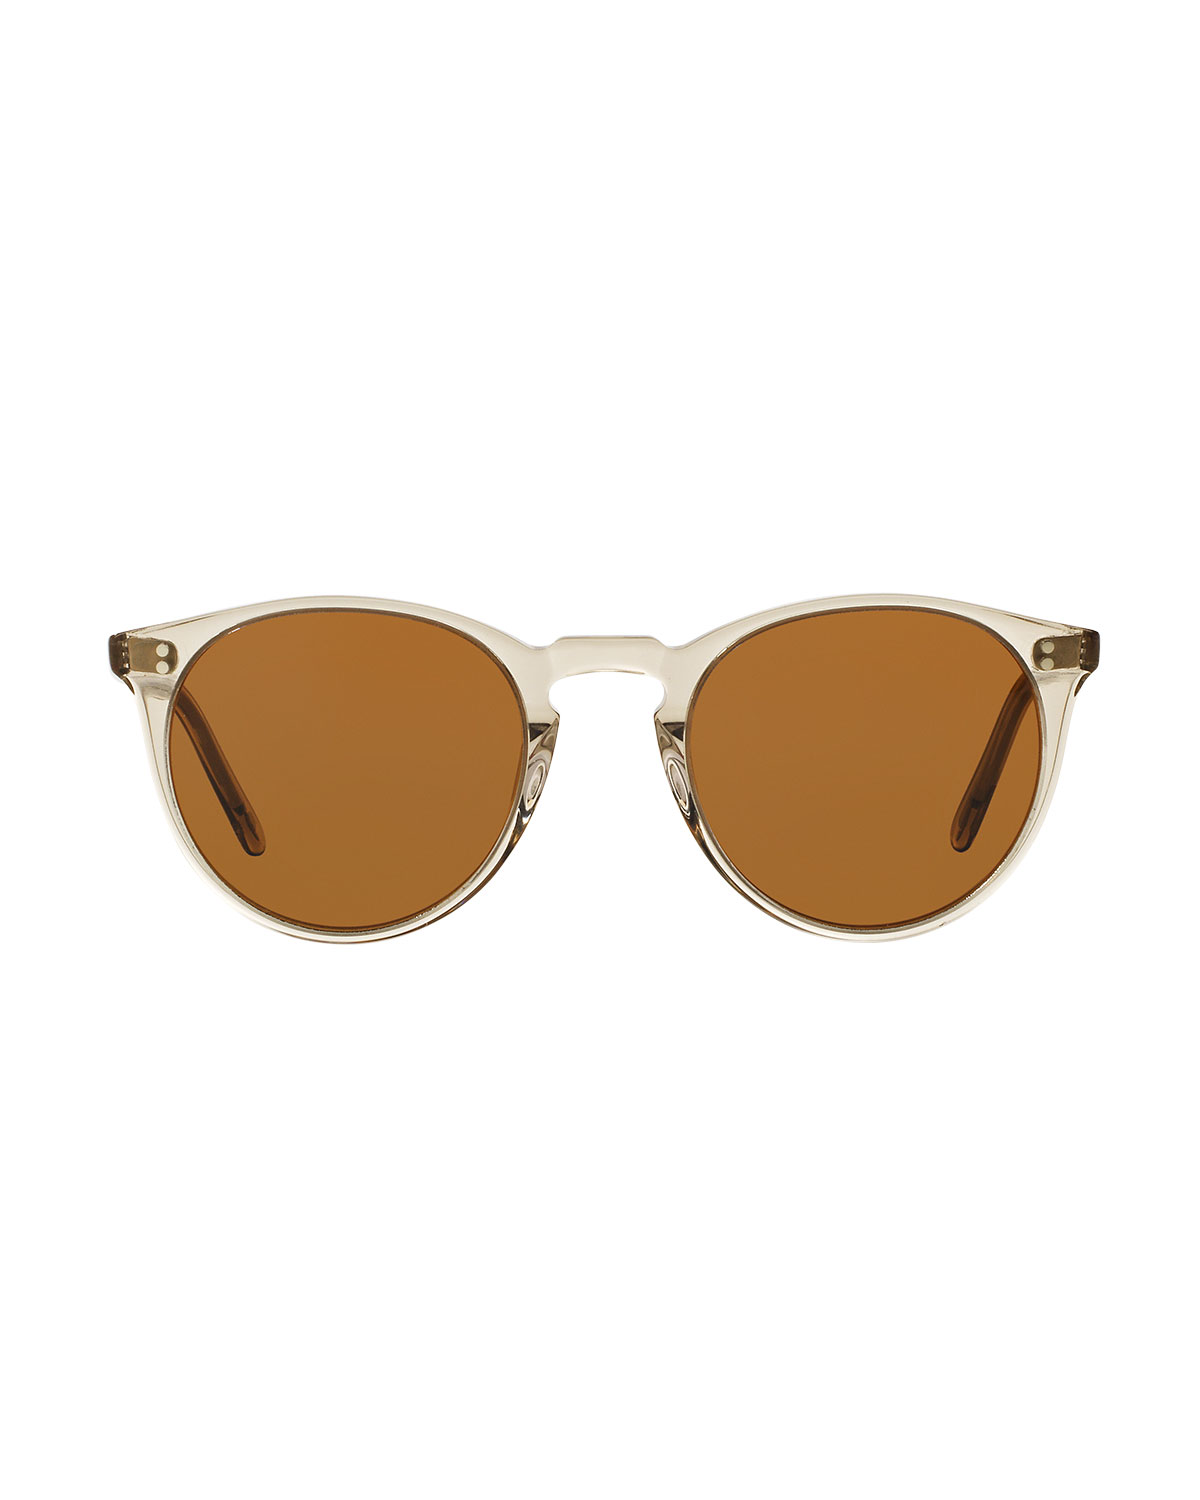 abb39dae793 Oliver Peoples The Row O Malley NYC Peaked Round Sunglasses